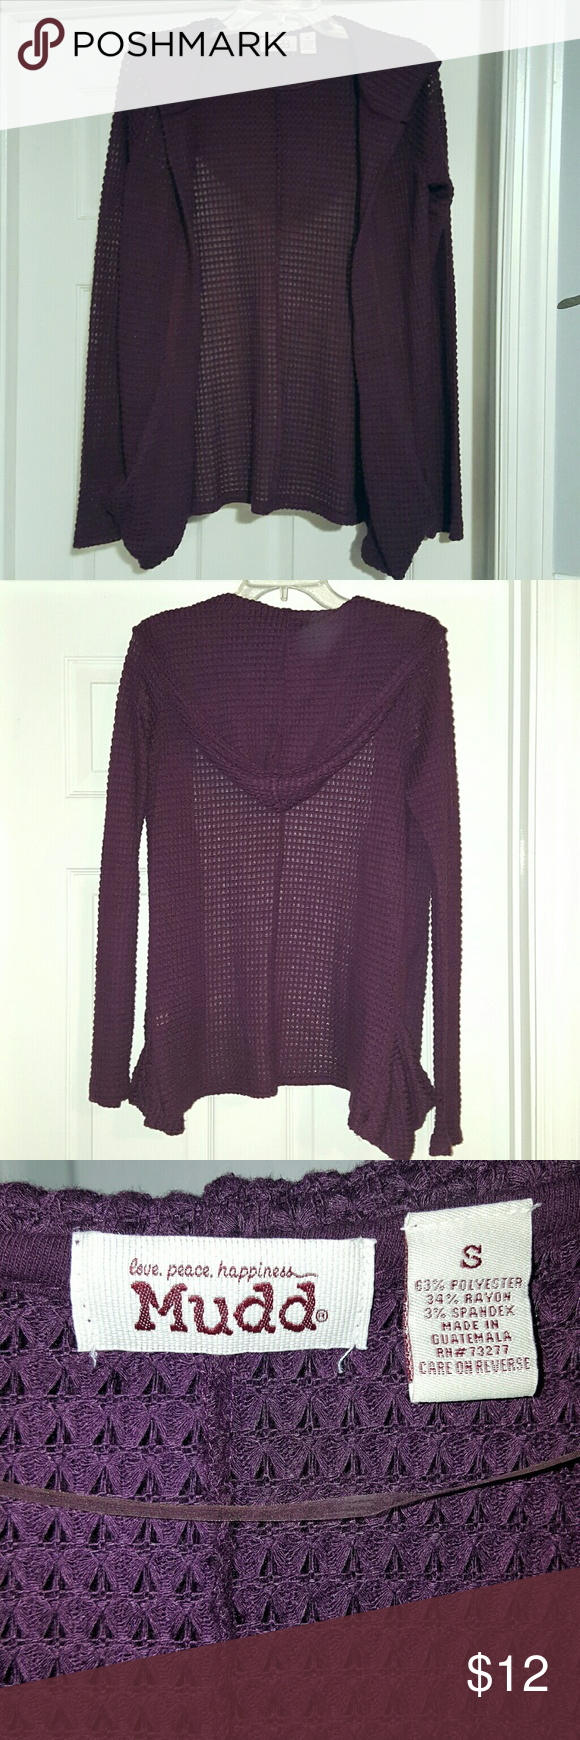 MUDD Waffle Hooded Cardigan Beautiful Eggplant Color.  Without tags but never worn.  Mint condition! Mudd Sweaters Cardigans